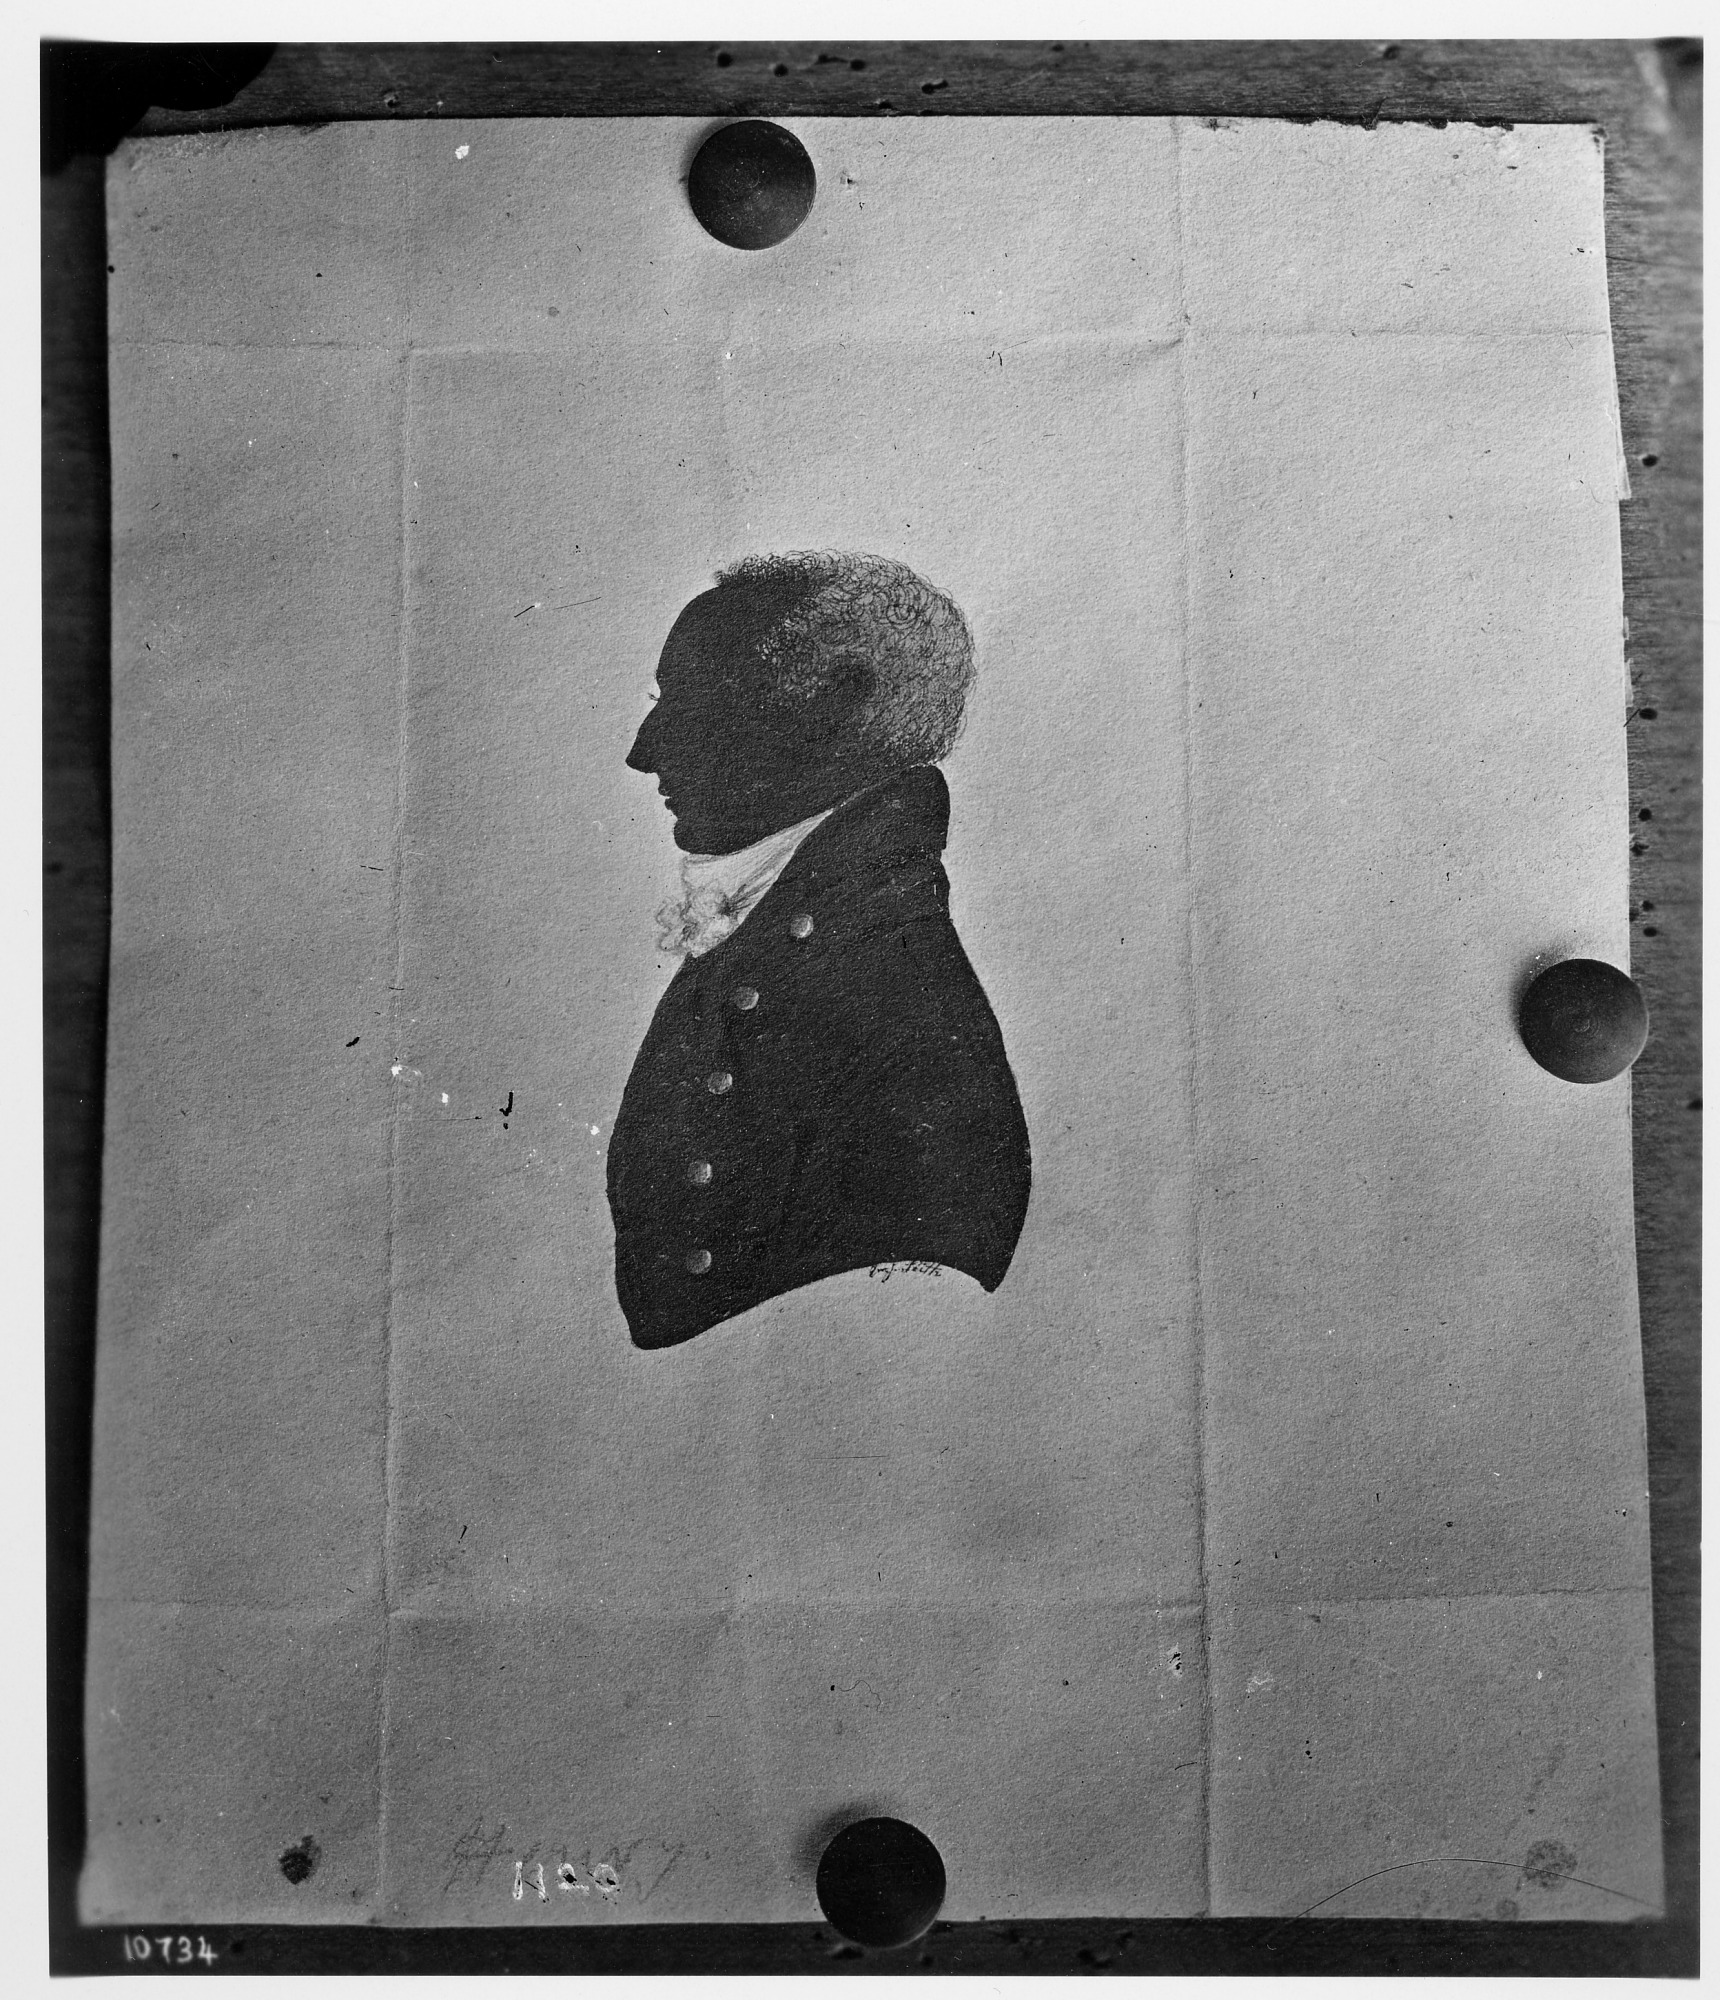 Silhouette of Henry James Hungerford, 1830. Smithsonian Institution Archives, negative number 2002-12209.